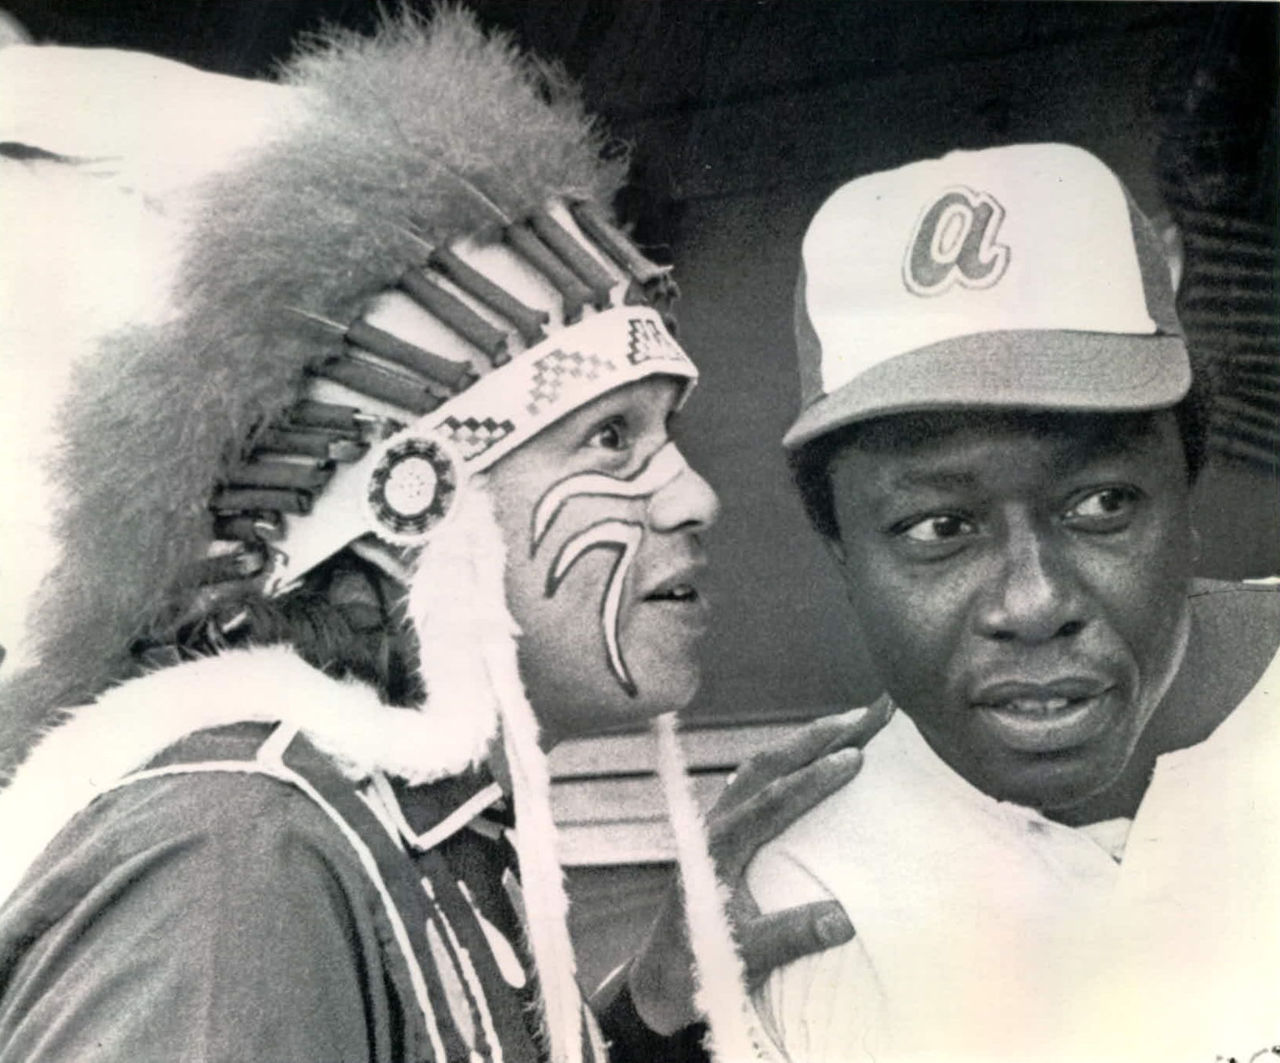 BACK IN THE DAY |4/8/74| Hank Aaron hit his 715th home run to break Babe Ruth's home run record.